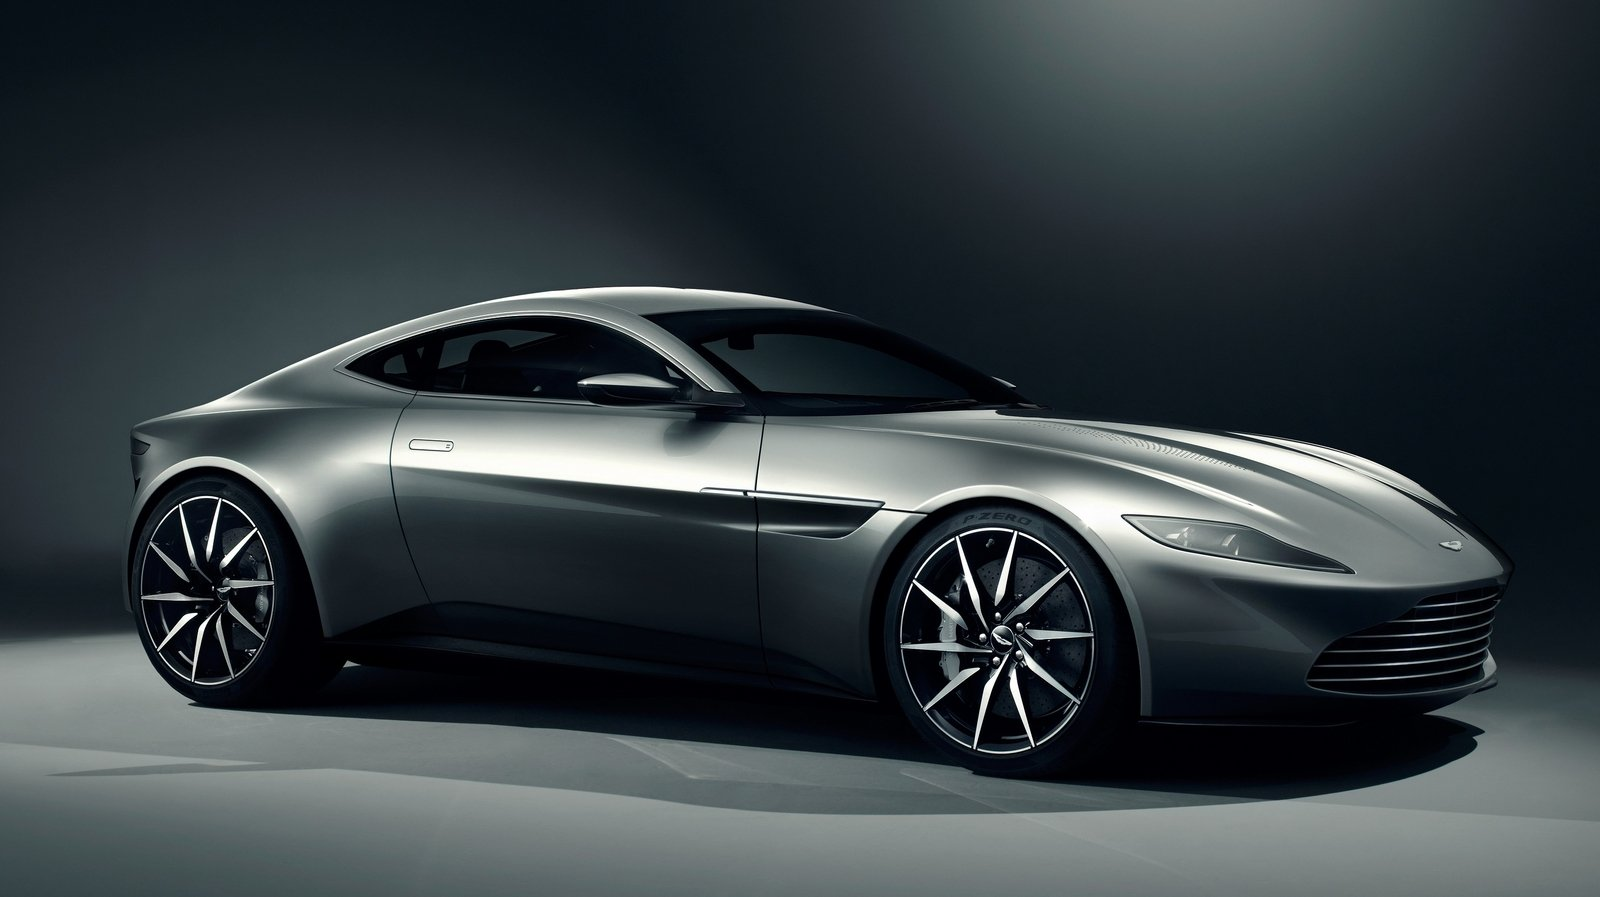 2015 aston martin db10 picture 581092 car review top speed. Black Bedroom Furniture Sets. Home Design Ideas